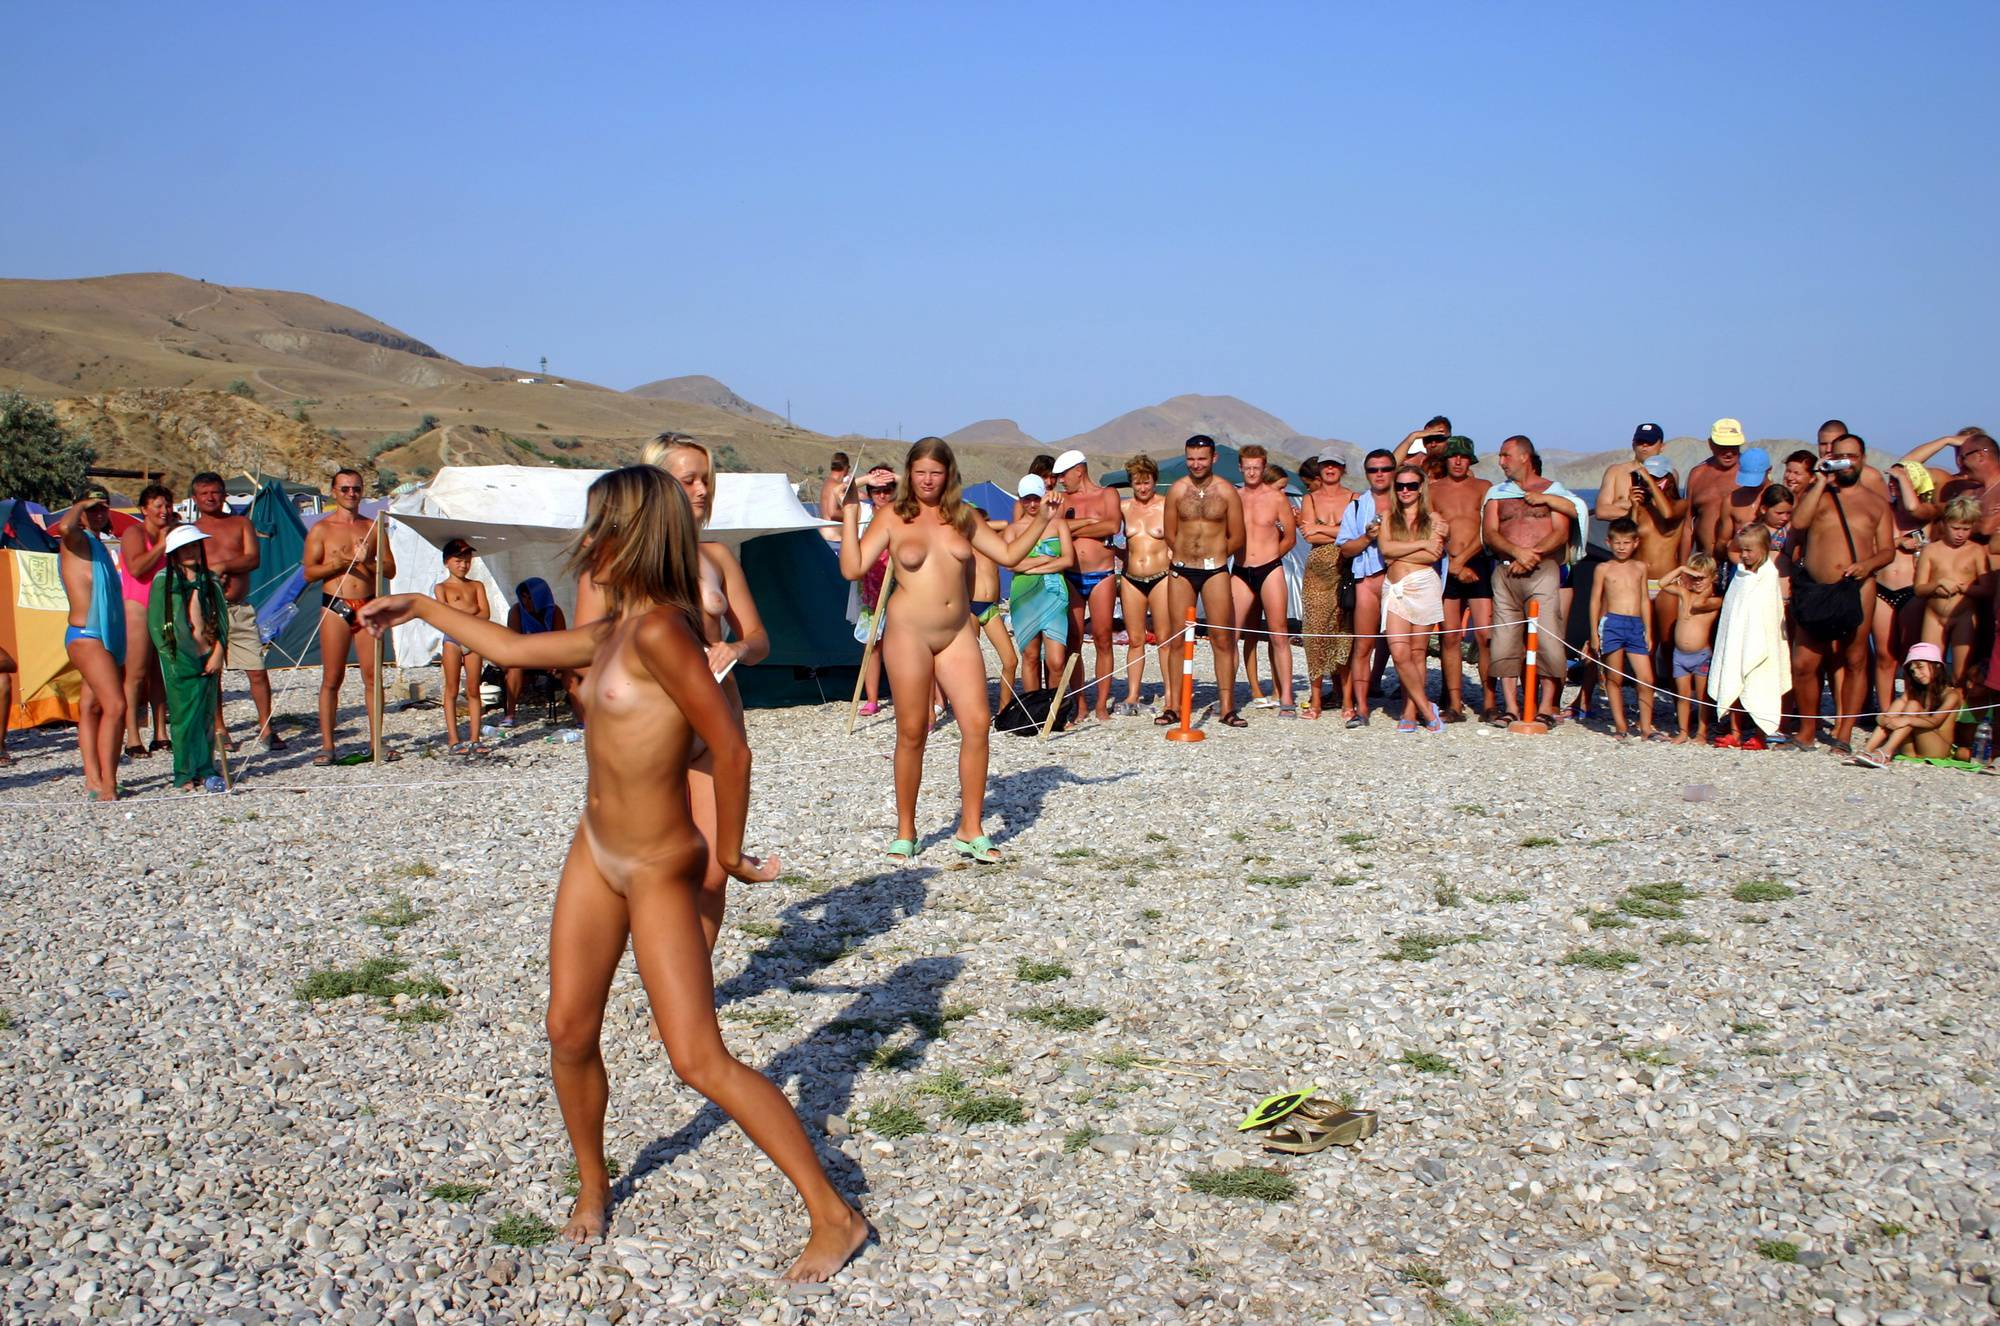 Nudist Photos Pageant Walk and a Dance - 1